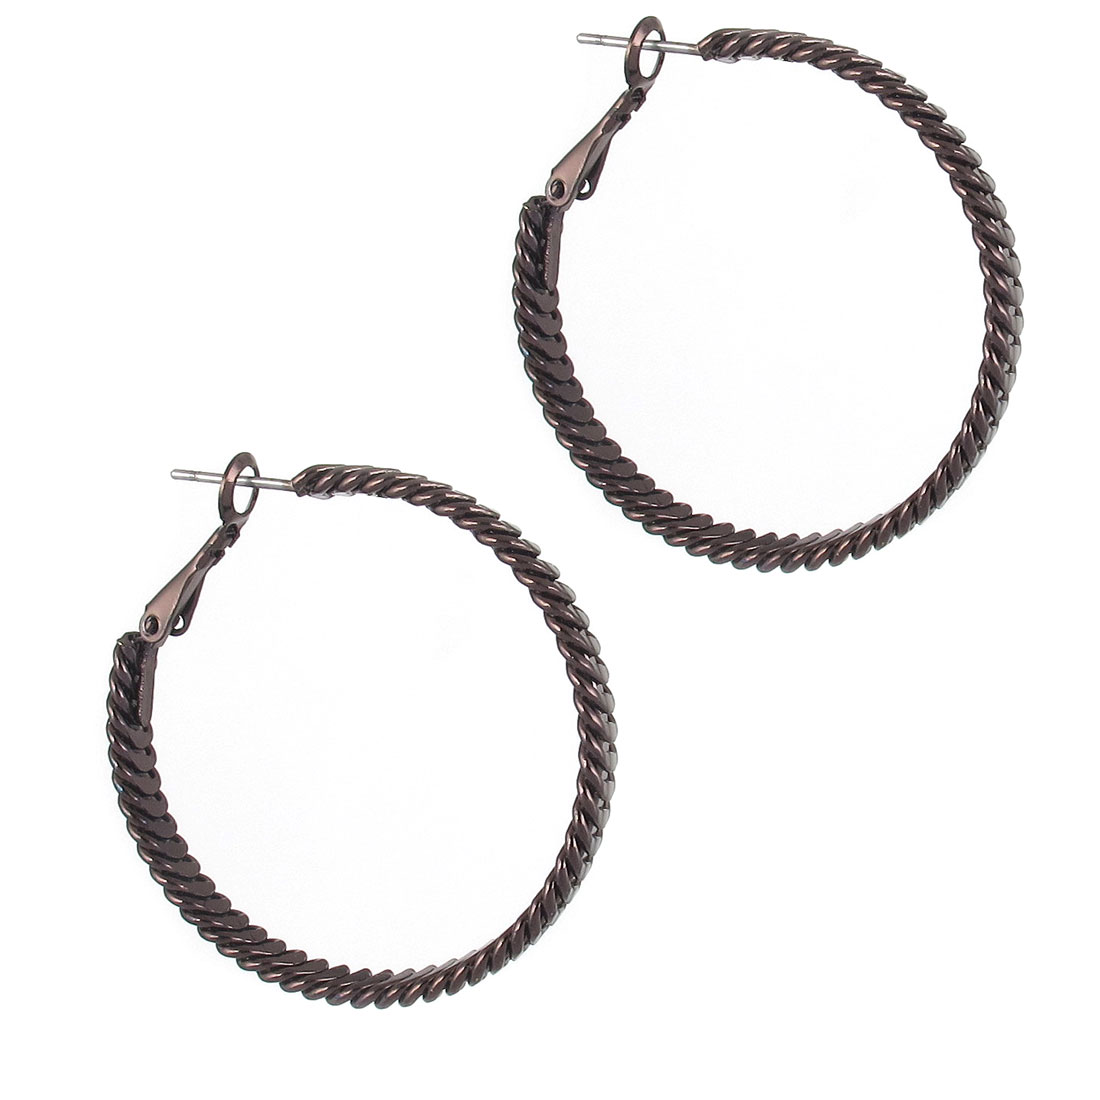 "1.6"" Dia Chocolate Color Metal Narrow Edge Textured Circle Hoop Pierced Earrings Pair for Lady Women"